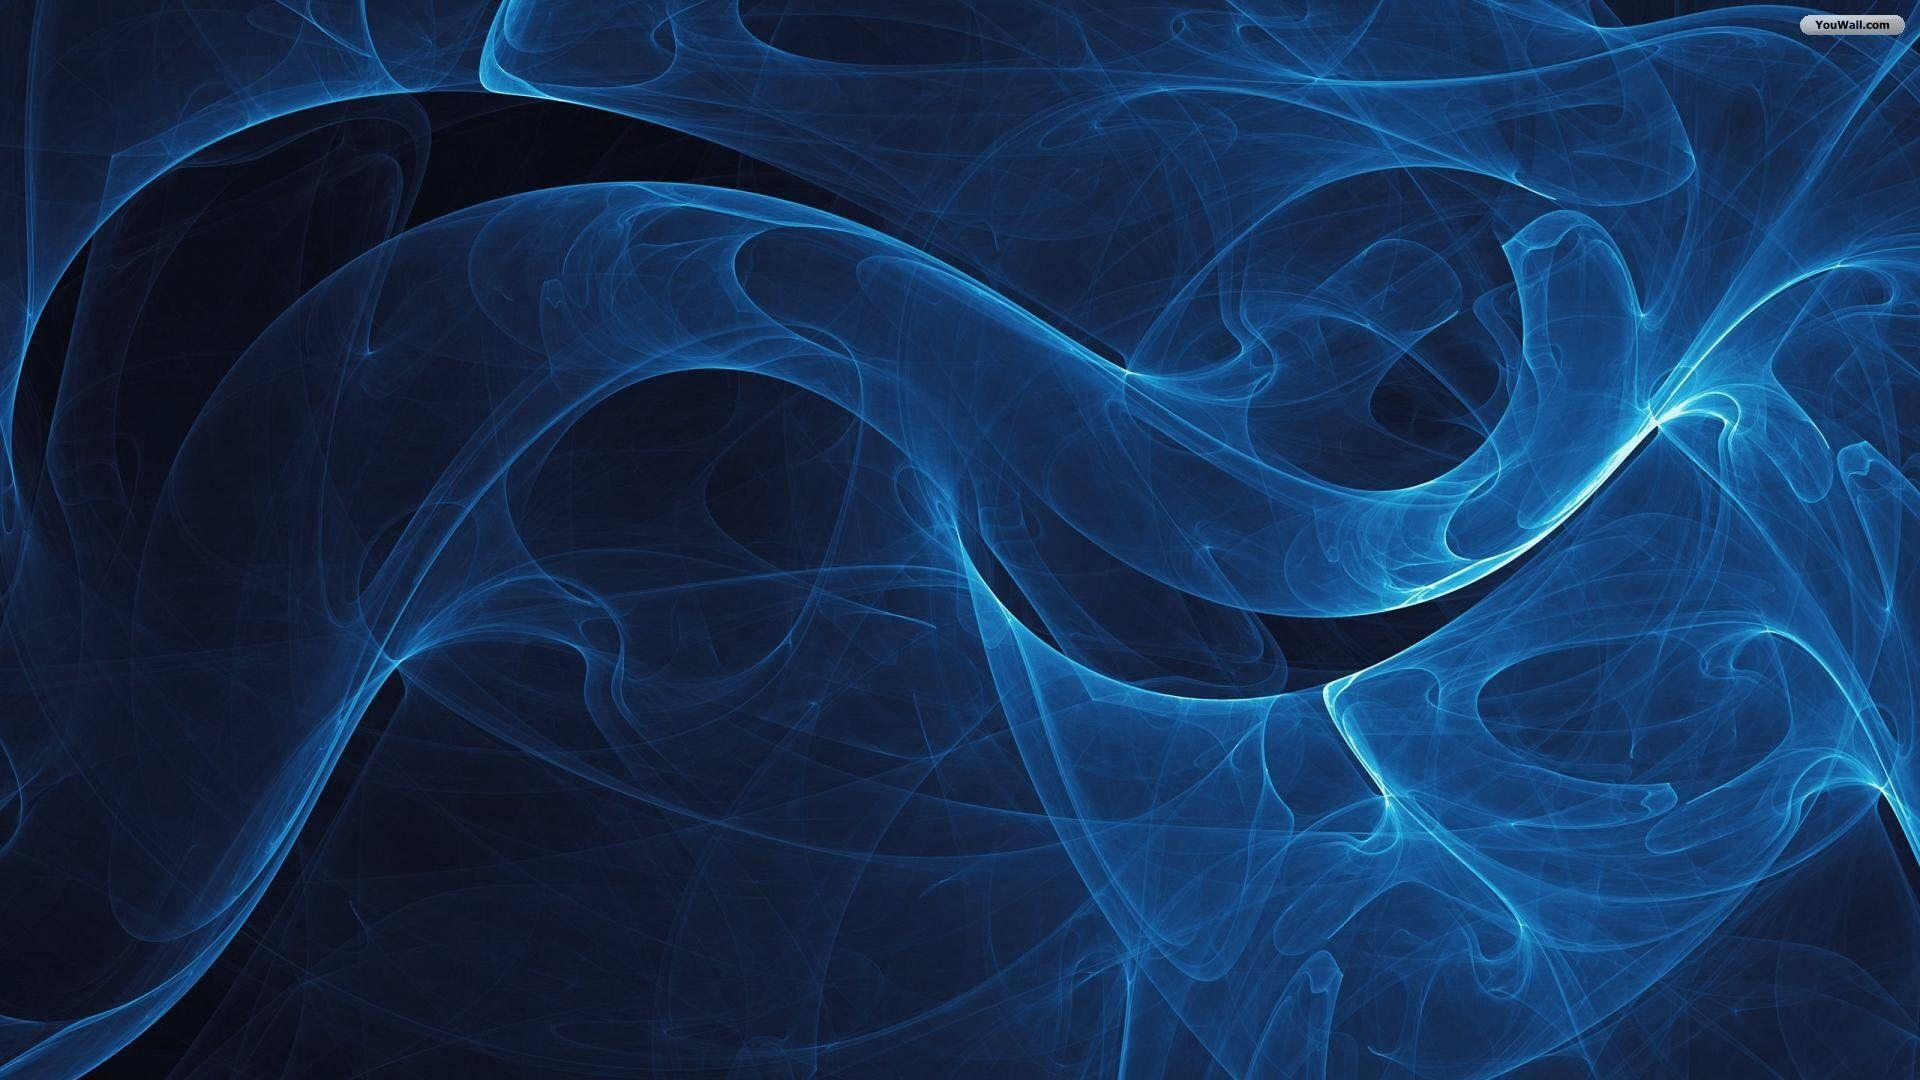 abstract wallpapers 1080p blue - photo #1